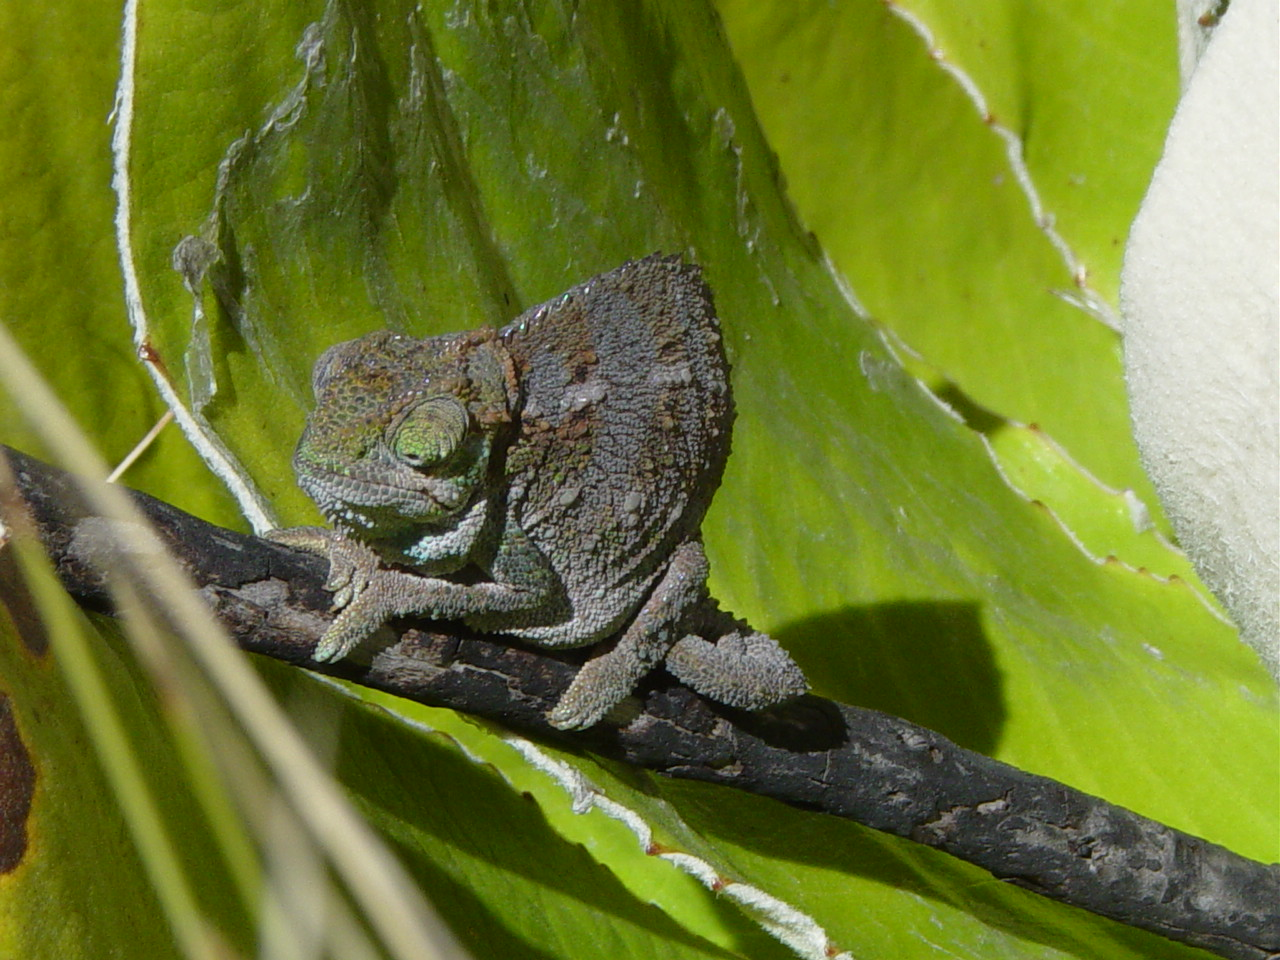 A small green chameleon hides amongst some large green leaves.